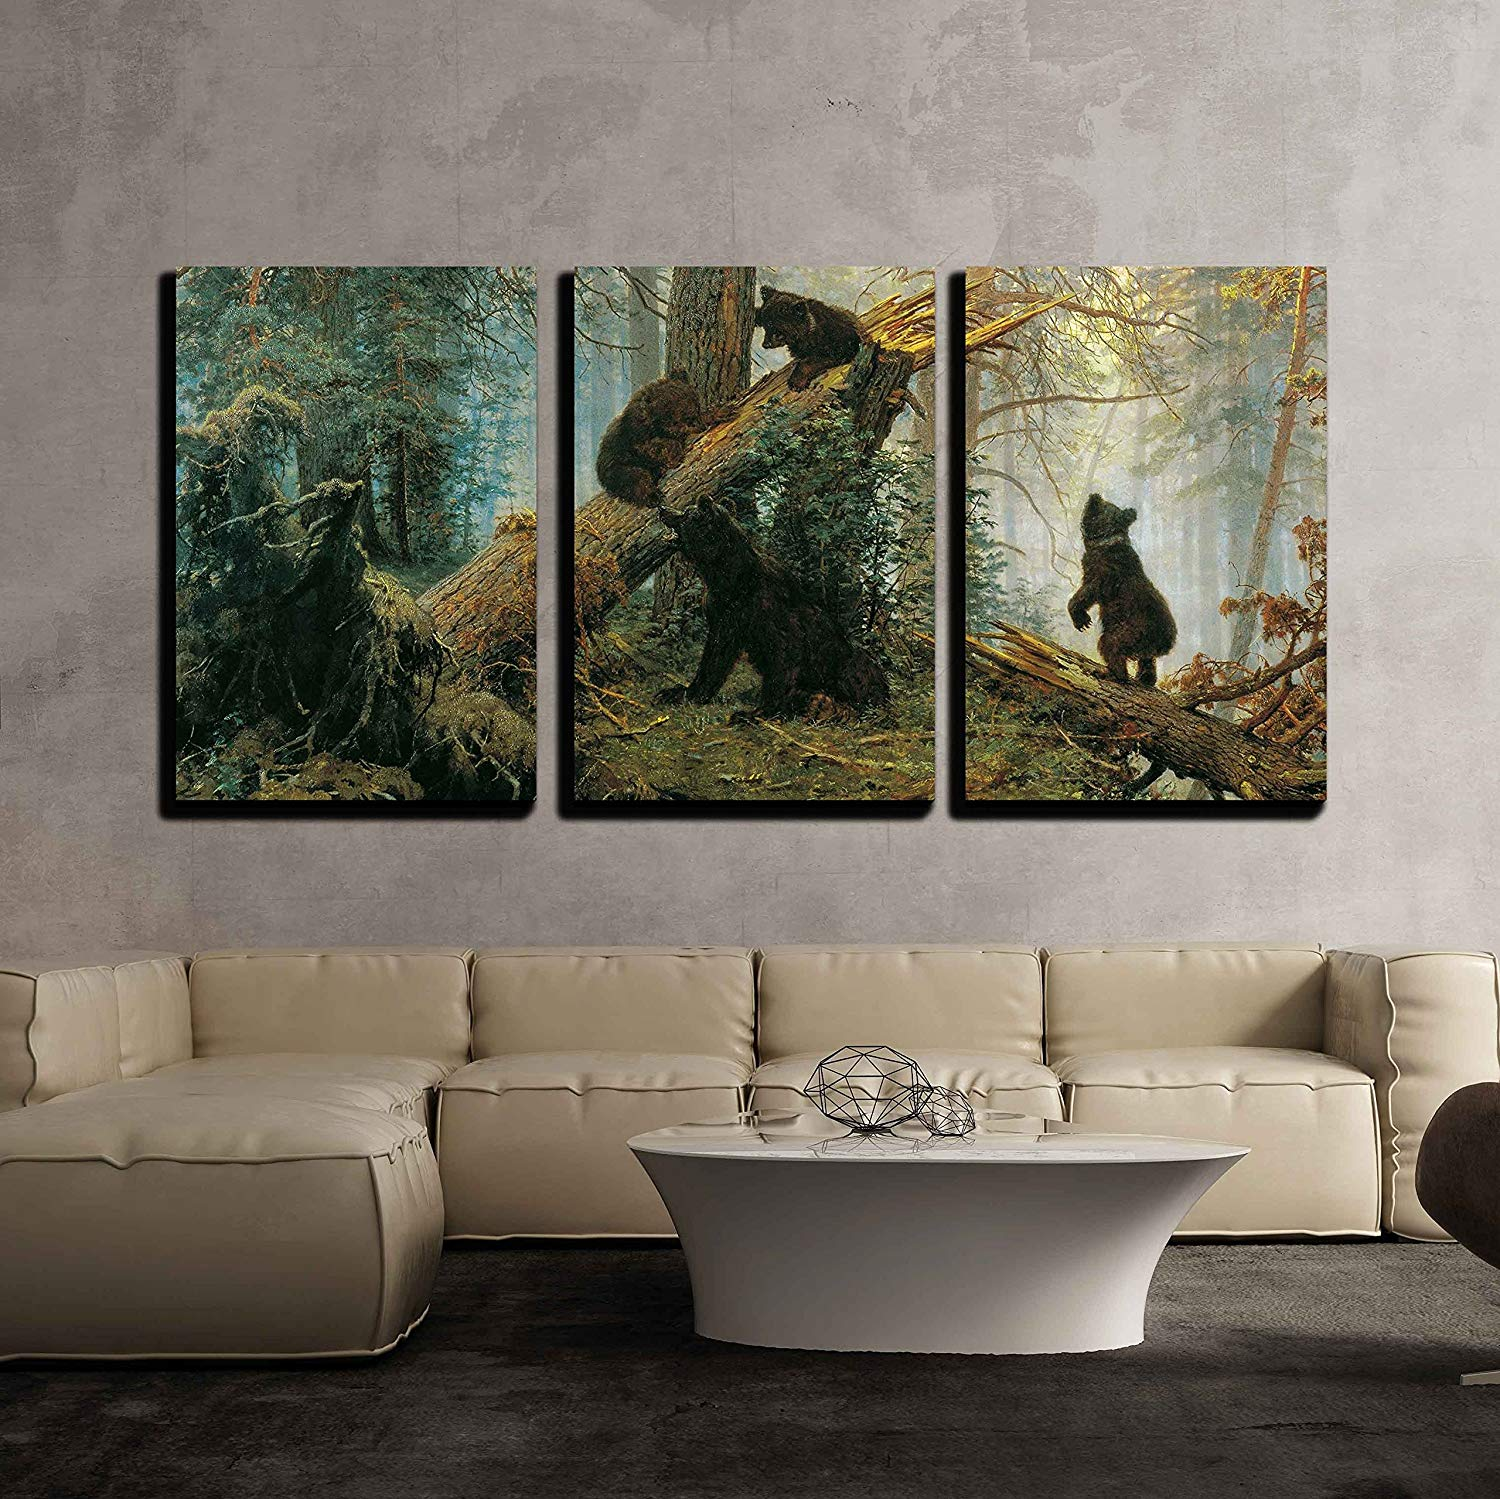 3 stuks Moderne Canvas Schilderij Zwart Beren in Bos Schilderen Dier en Landschap Canvas Art Wall Decor Drop Shipping